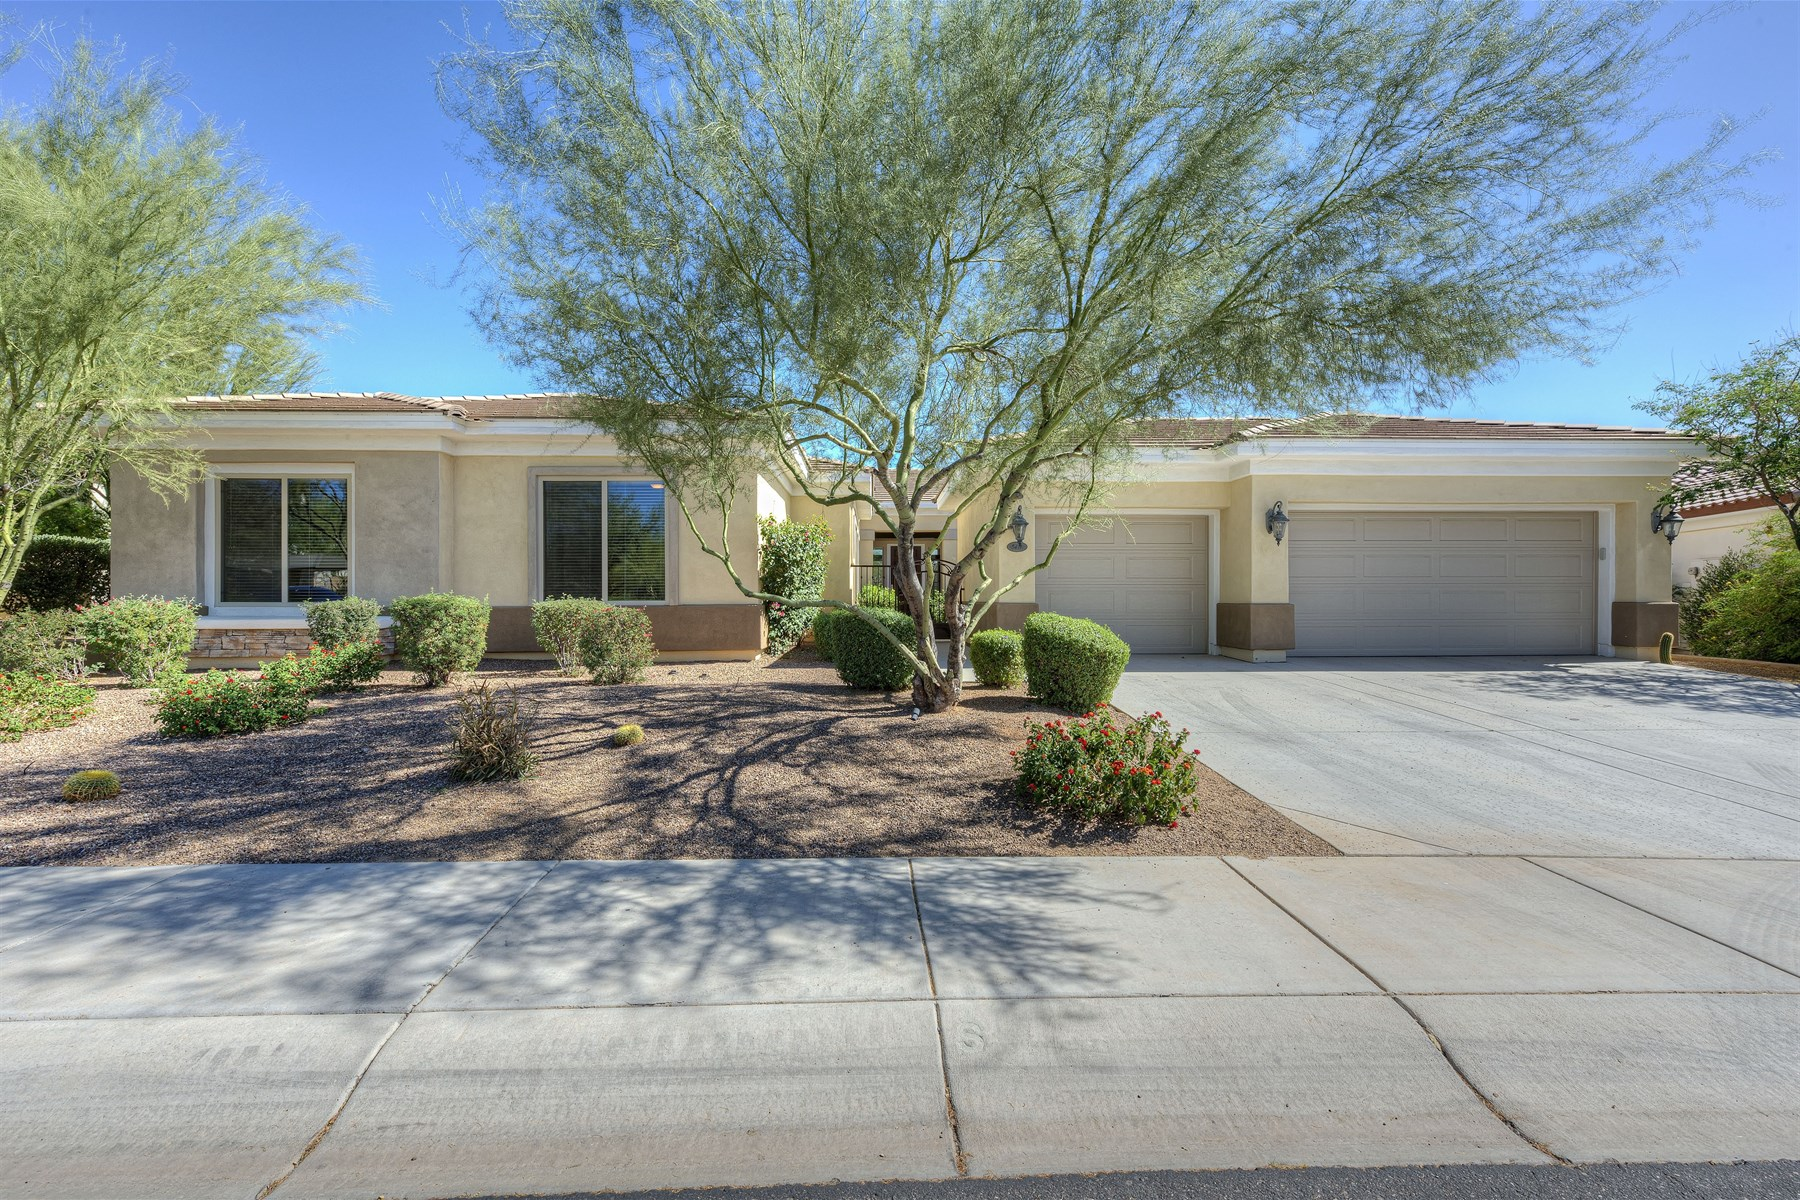 Single Family Home for Sale at Highly upgraded home on a premium 1/3 acre lot 5413 E Milton Dr Cave Creek, Arizona 85331 United States